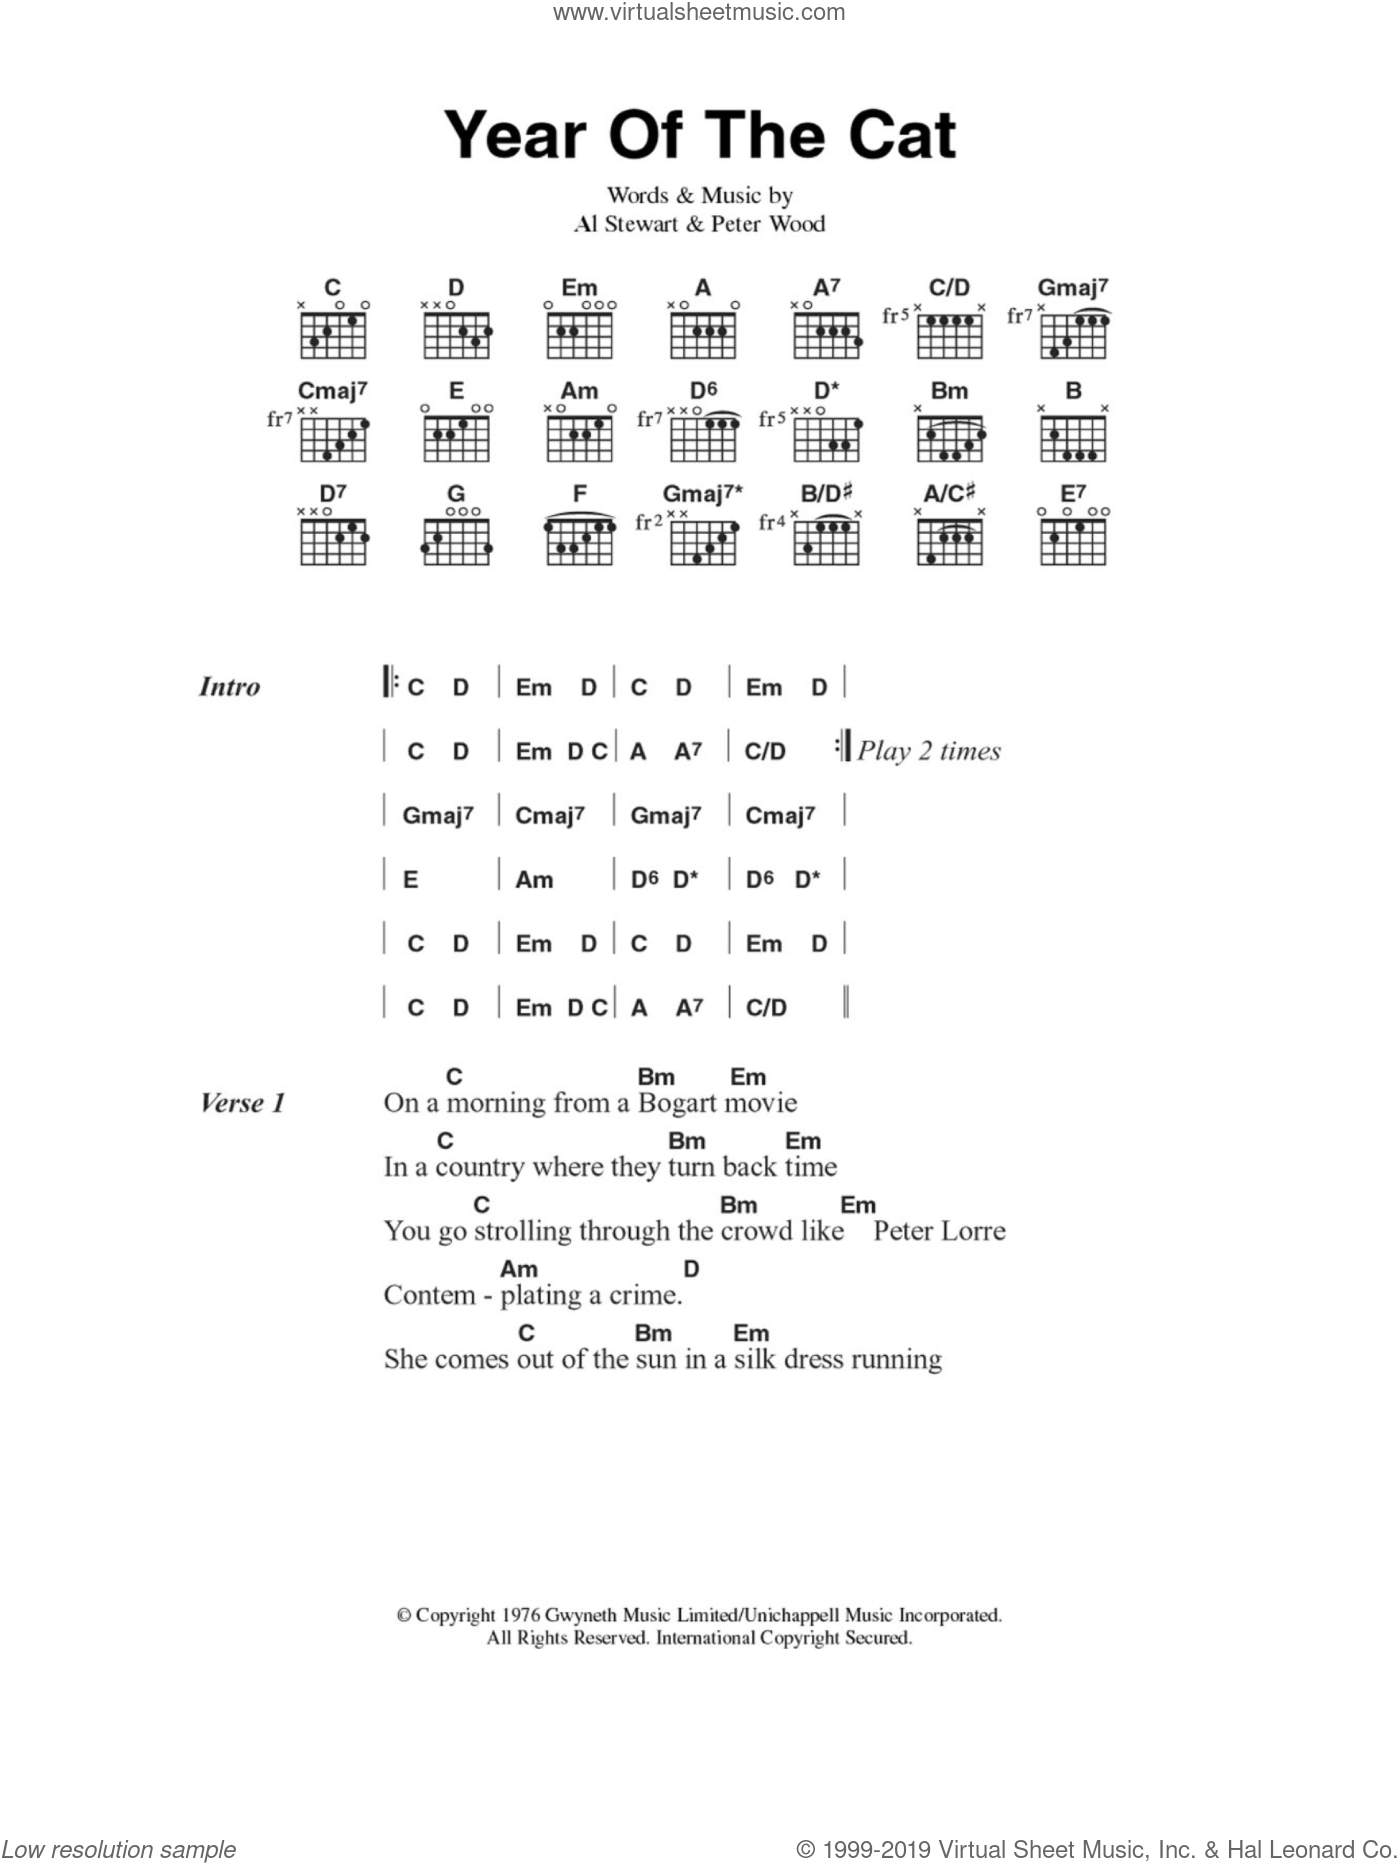 Year Of The Cat sheet music for guitar (chords) by Peter Wood and Al Stewart. Score Image Preview.